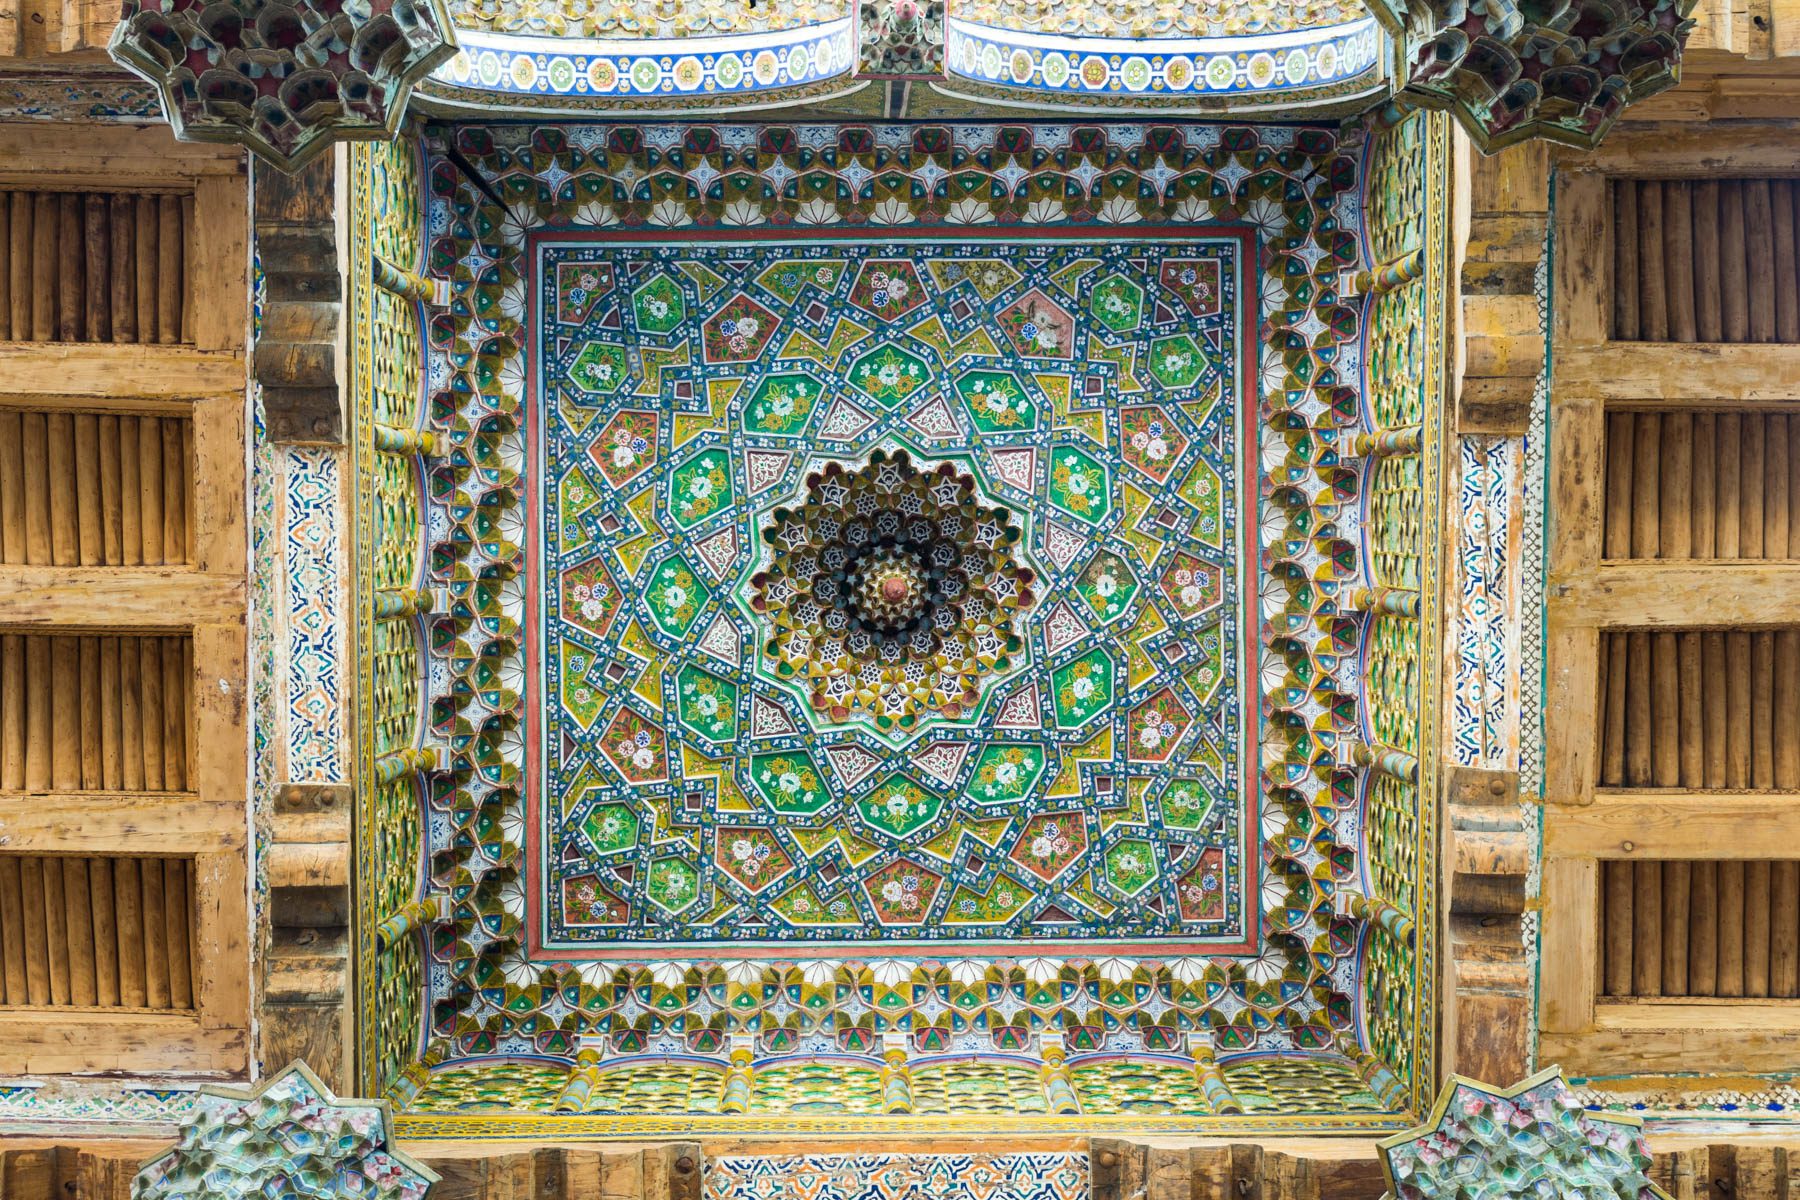 Two week Uzbekistan itinerary - Wooden fractal ceiling of the Bolo Hauz mosque in Bukhara, Uzbekistan - Lost With Purpose